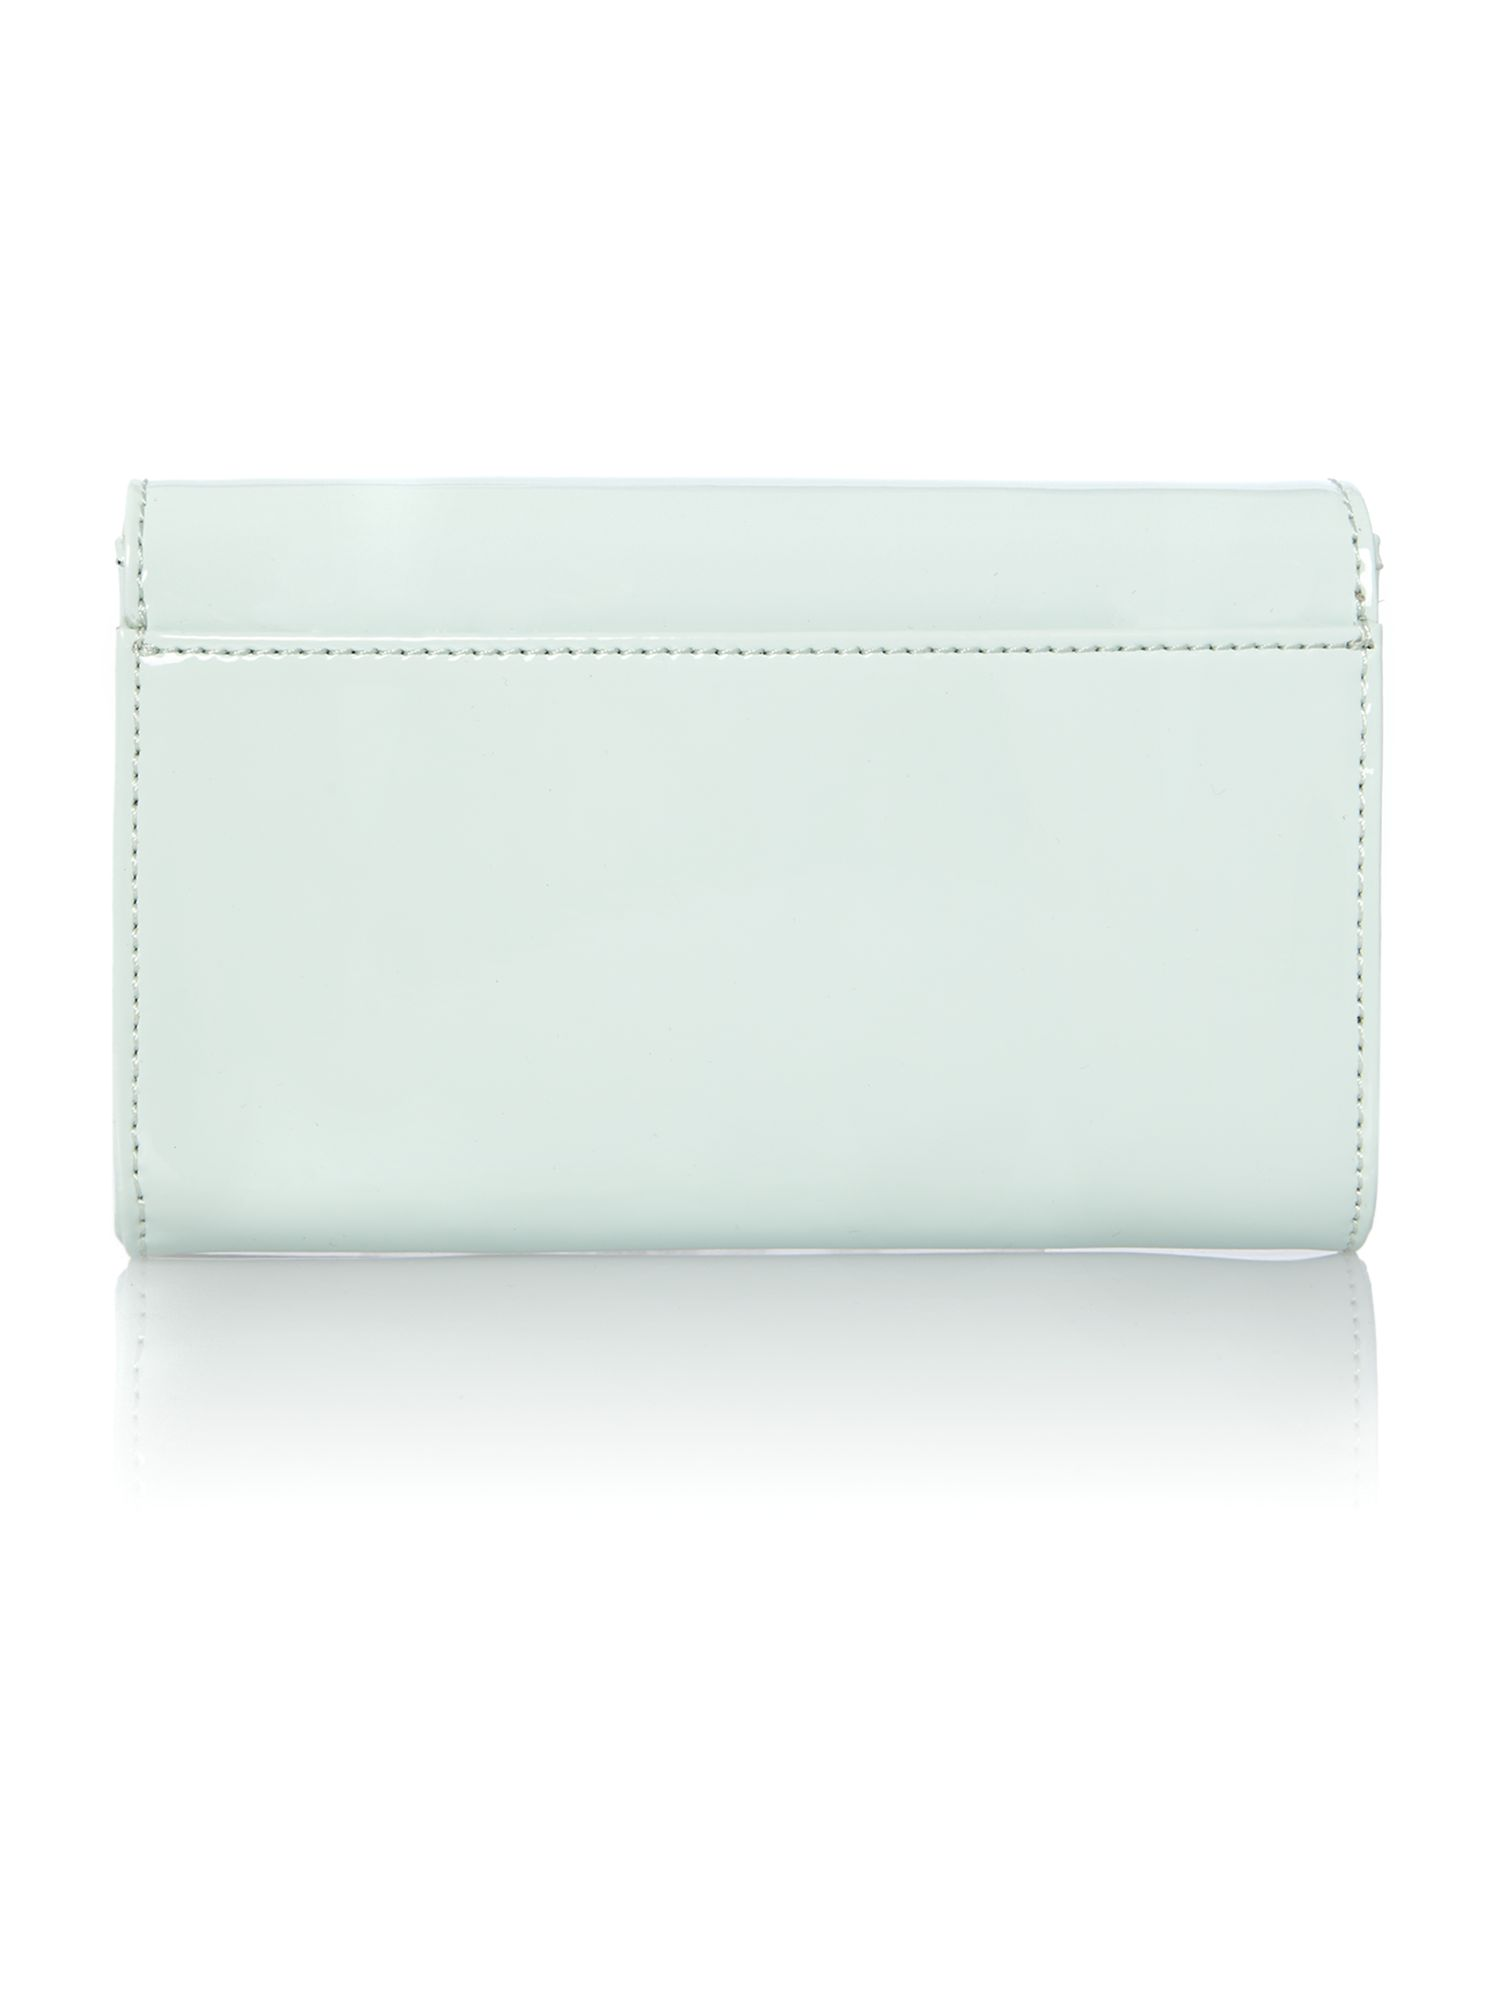 Green mini patent cross body bag